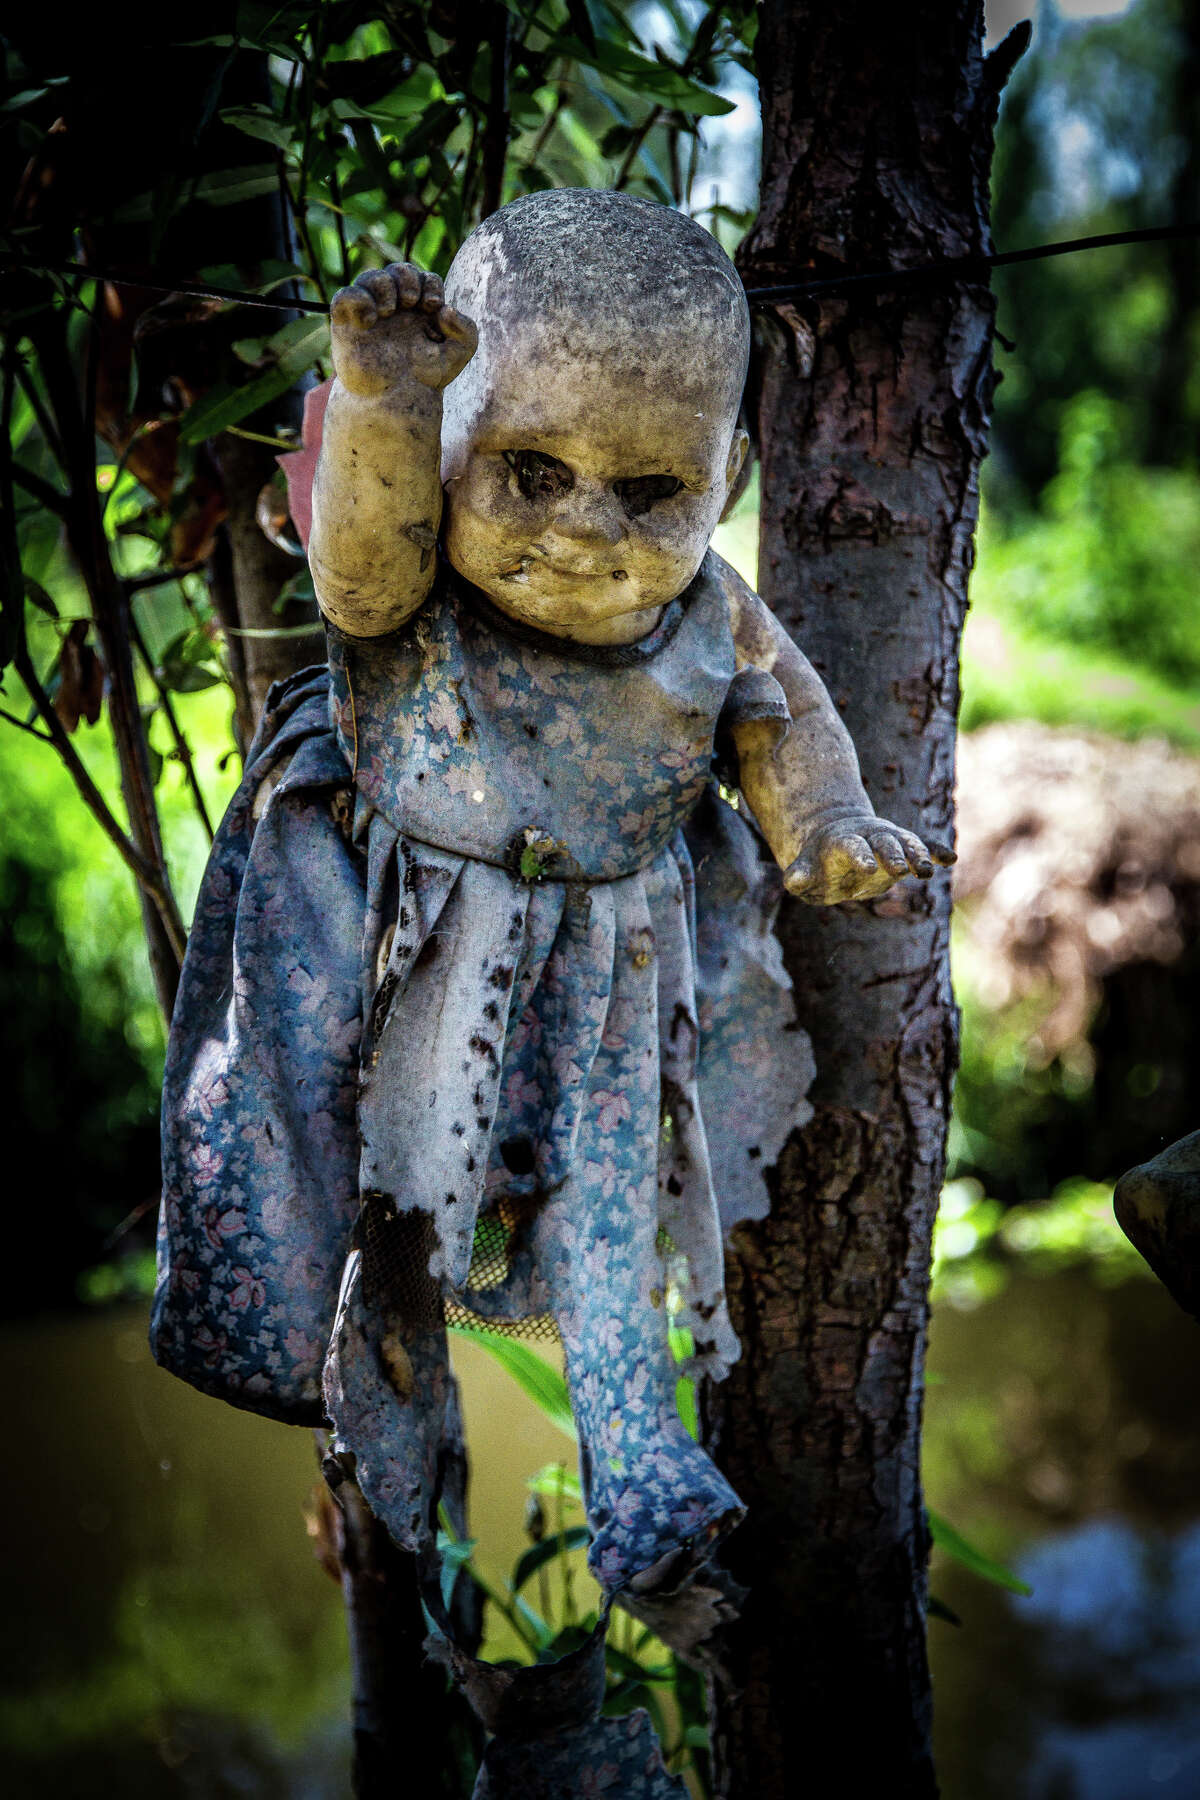 It all began when Barrera said he found a drowned child whom he could not save. Days later, he found a doll in the same place he found the drowned little girl.